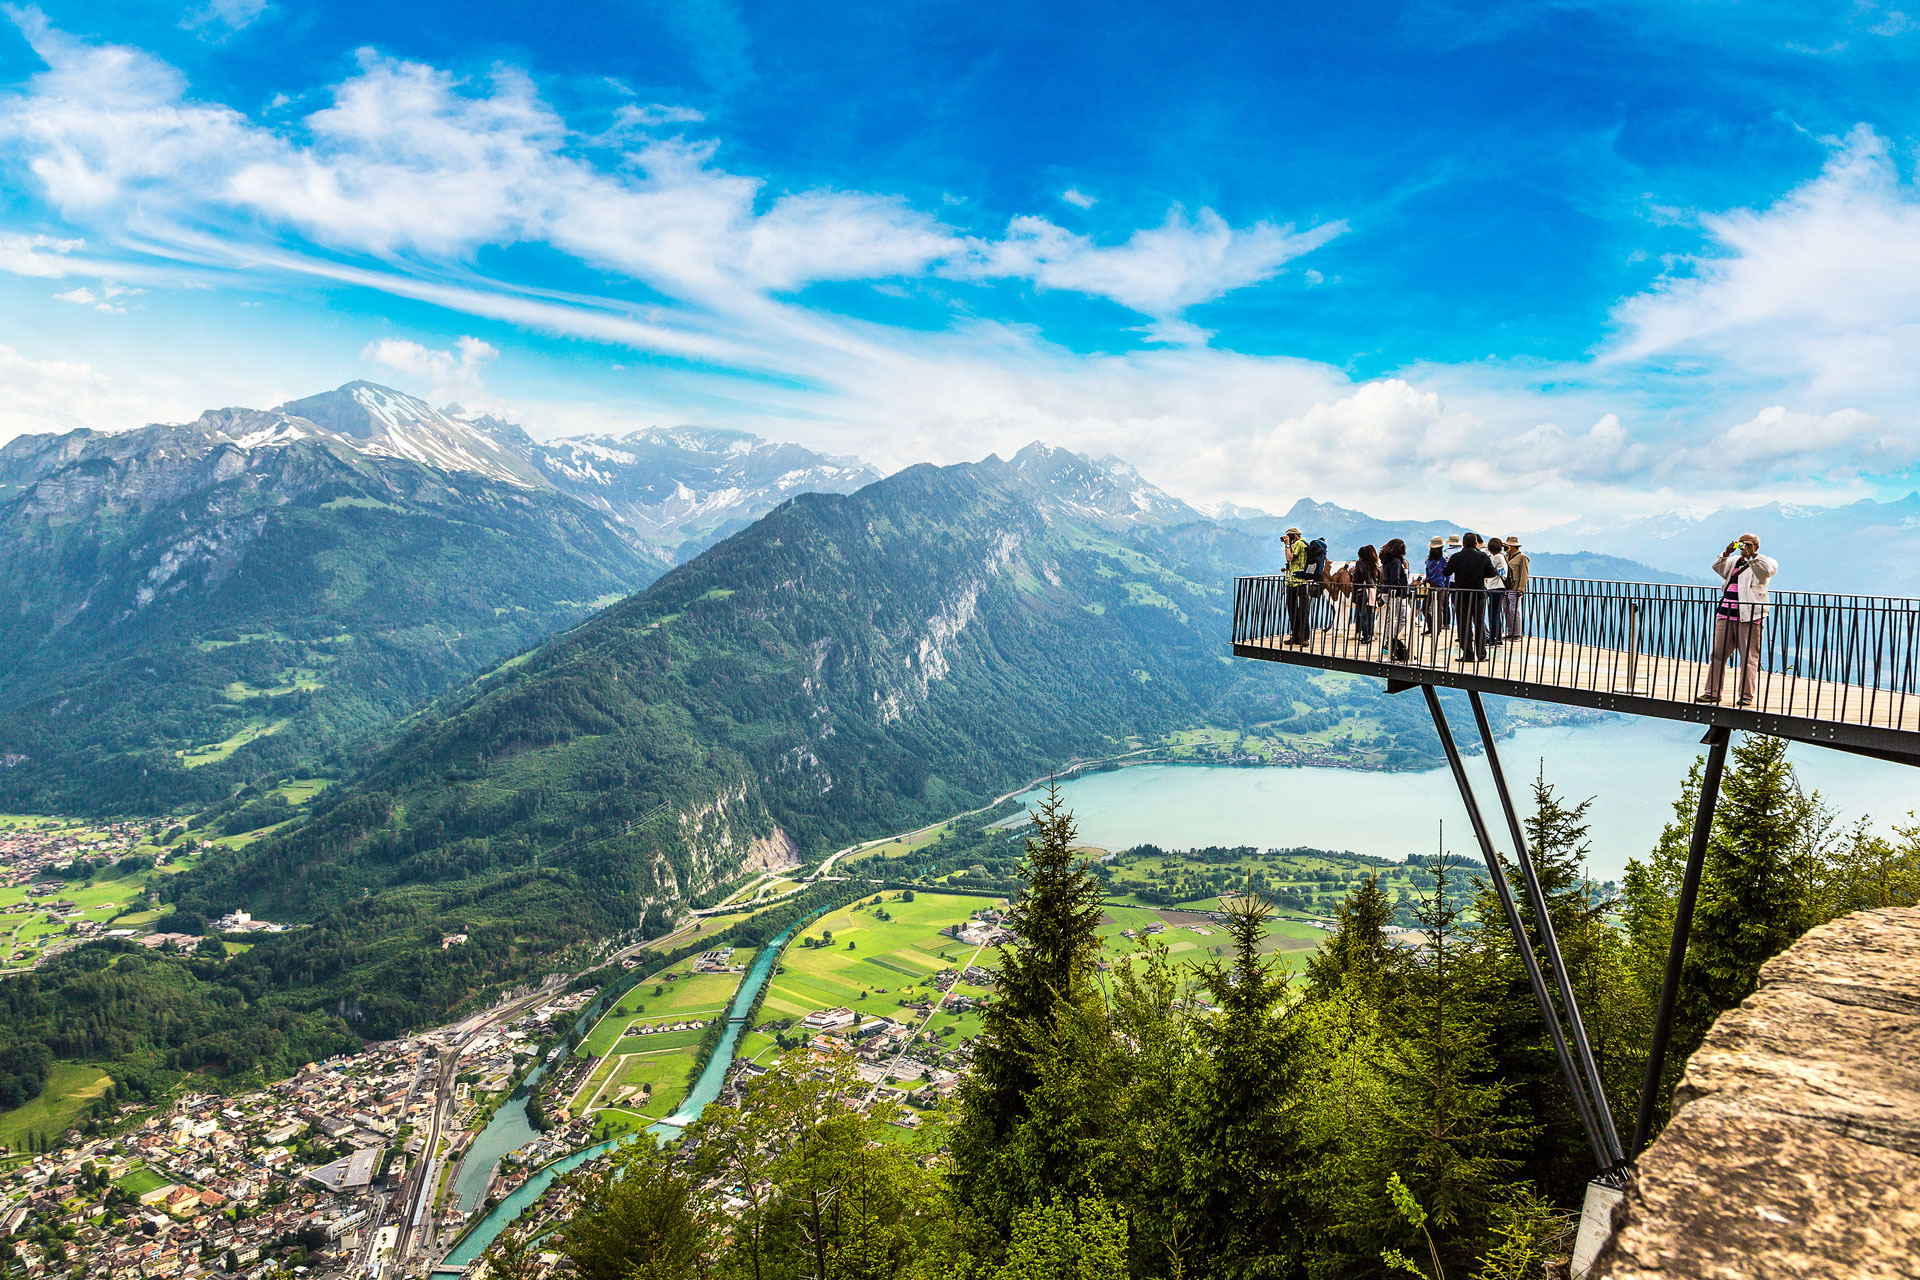 Harder-Kulm-observation-deck-in-Interlaken-Switzerland.jpg